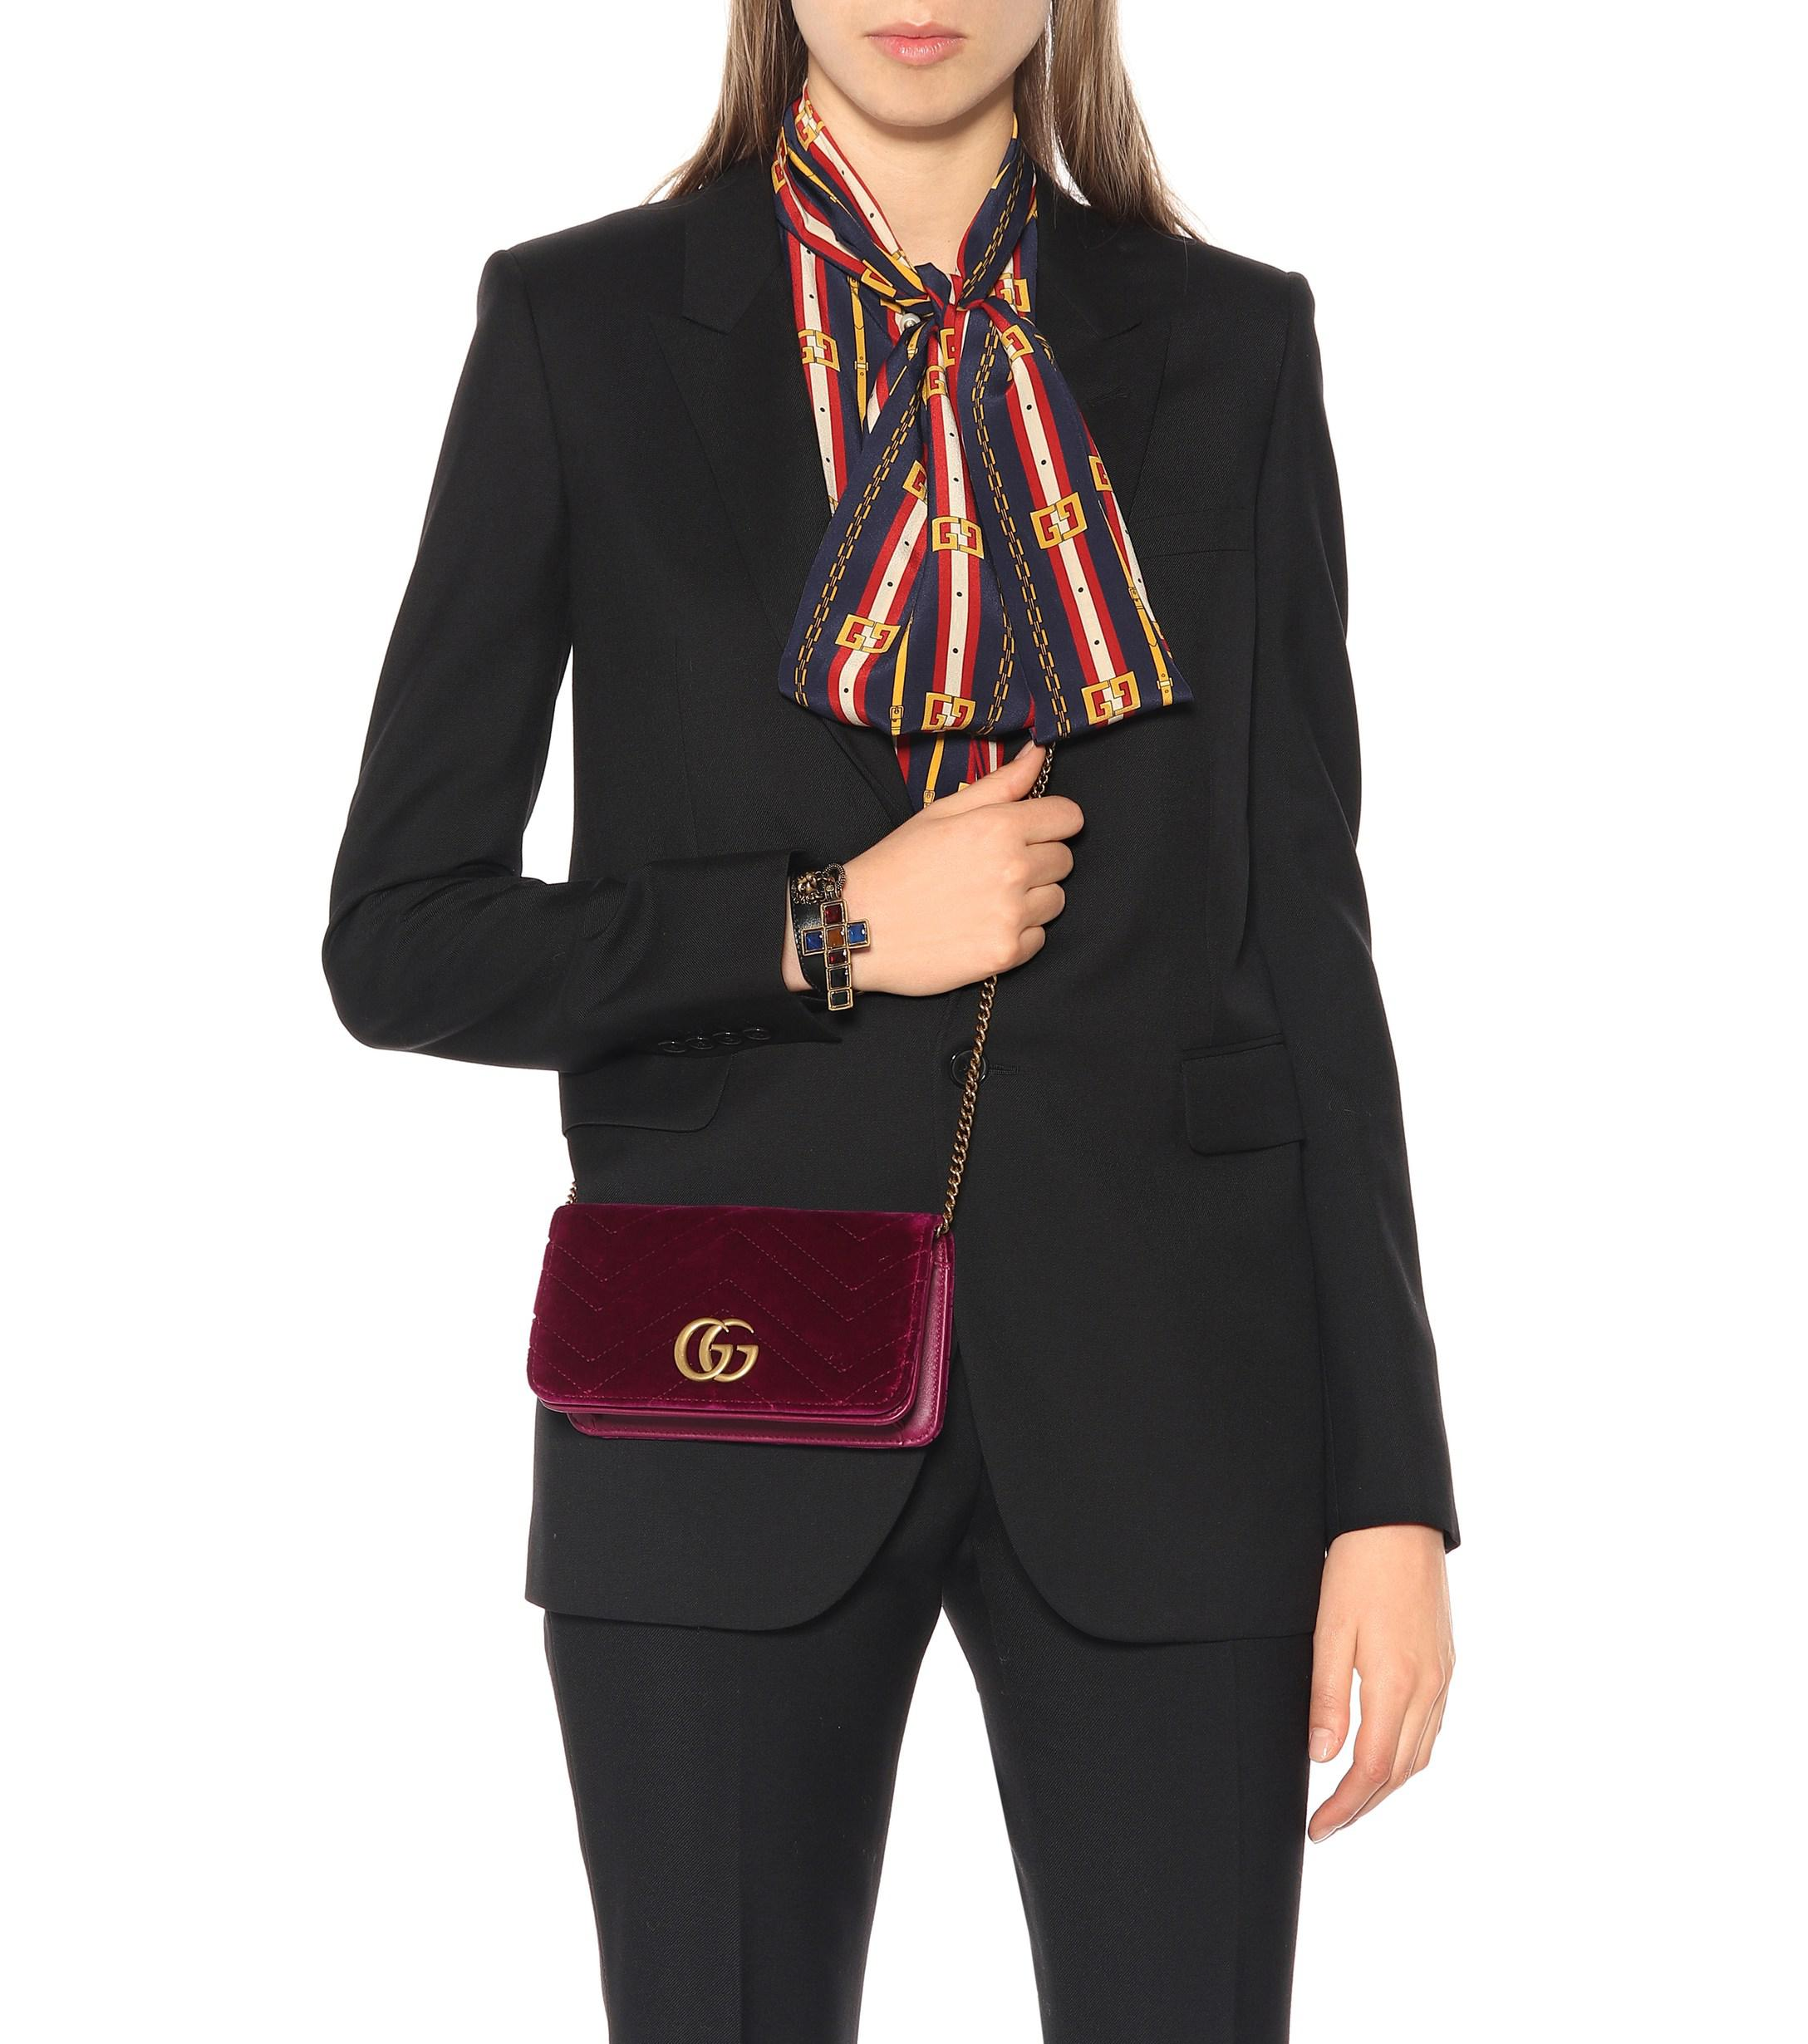 957c58123998c6 Gucci - Multicolor GG Marmont Super Mini Shoulder Bag - Lyst. View  fullscreen